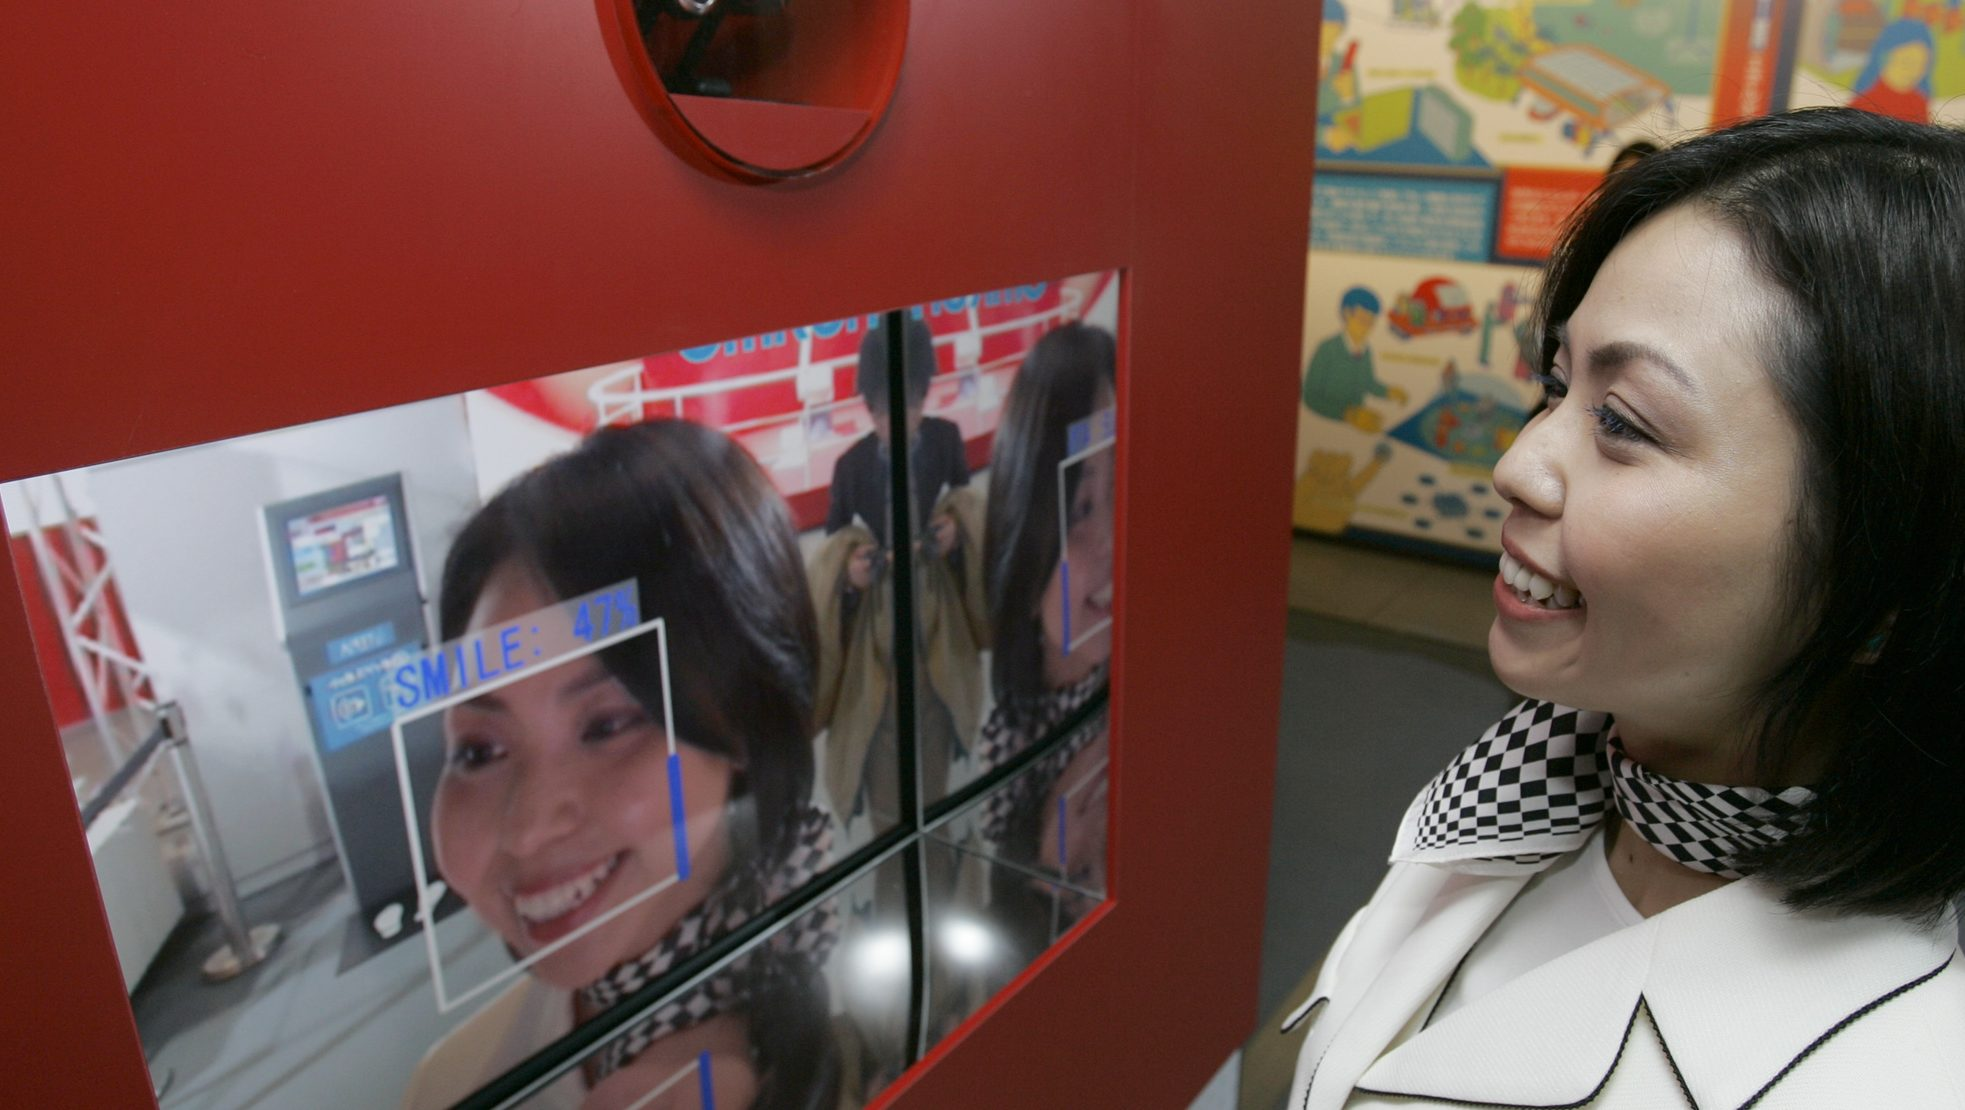 """A woman smiles as she demonstrates Japanese electronics and health-care company Omron Corp.'s Okao Catch, or """"face catch,""""  that can measure how big your smile is during a newly opened  technology exhibition space TEPIA in Tokyo Thursday, April 10, 2008. The software technology scans a video image to detect faces. It can find up to 100 faces in an image, according to Yasushi Kawamoto of Omron. Okao Catch then analyzes curves of the lips, eye movements and other facial expressions to decide how much a person is smiling using data collected from a million people and their smiles, he said."""